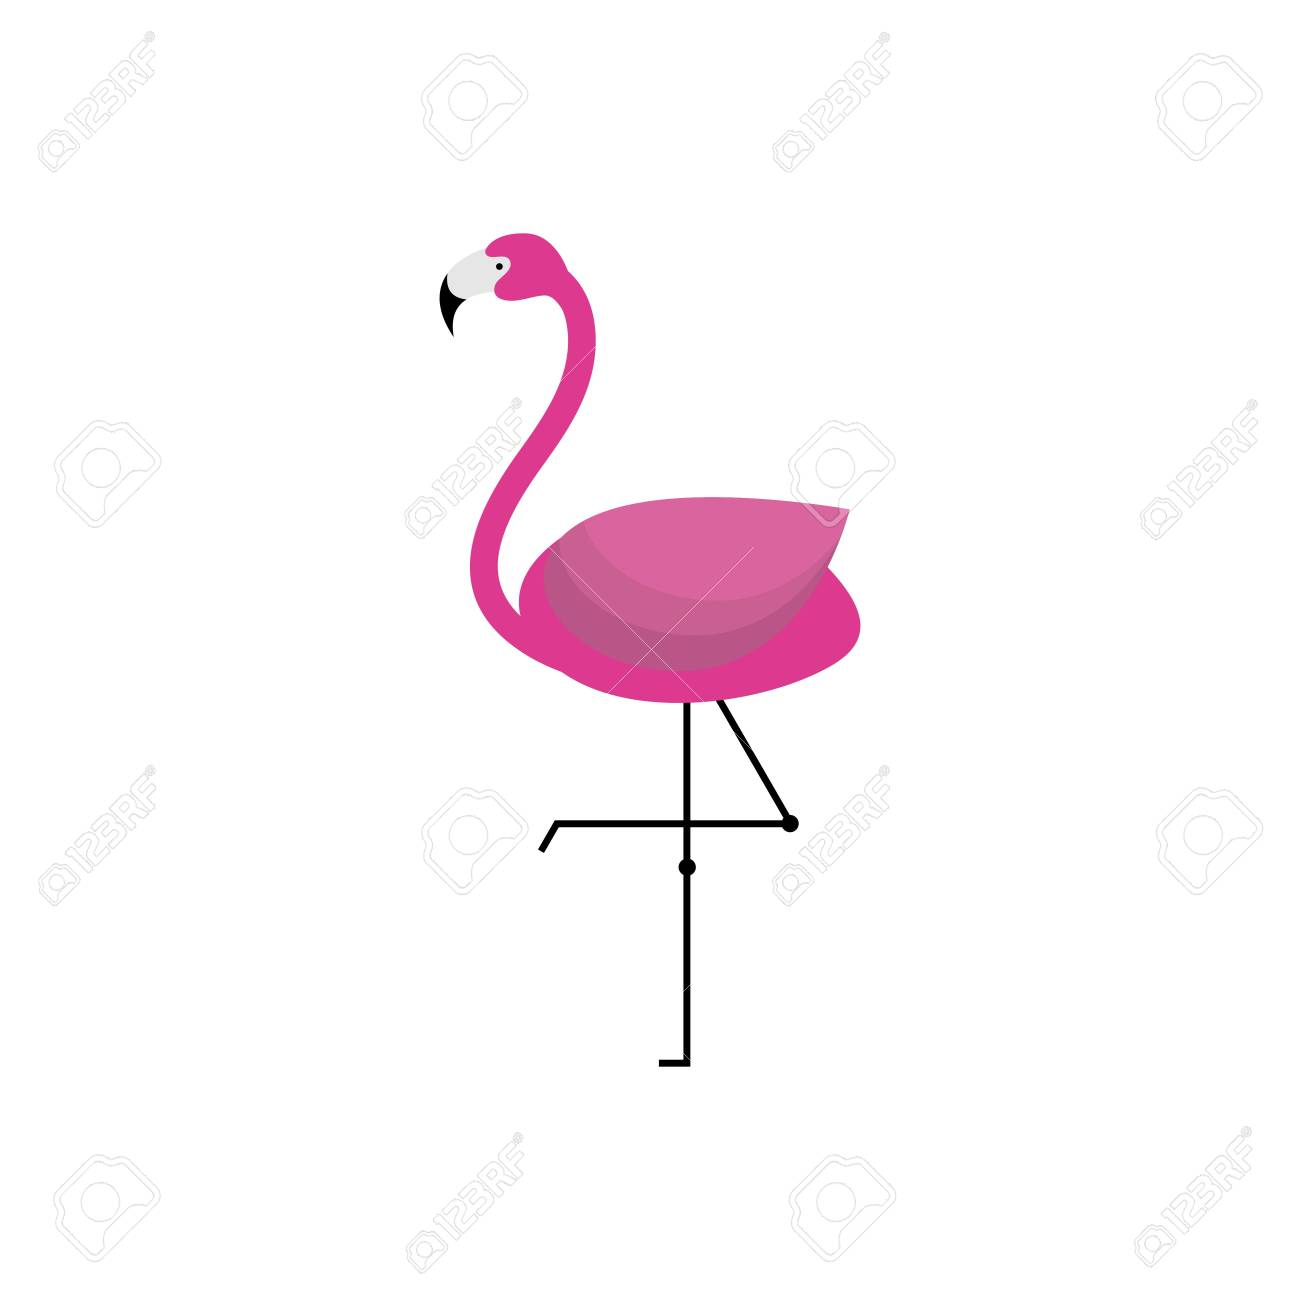 Flamingo Template Stock Photo, Picture And Royalty Free Image. Image ...